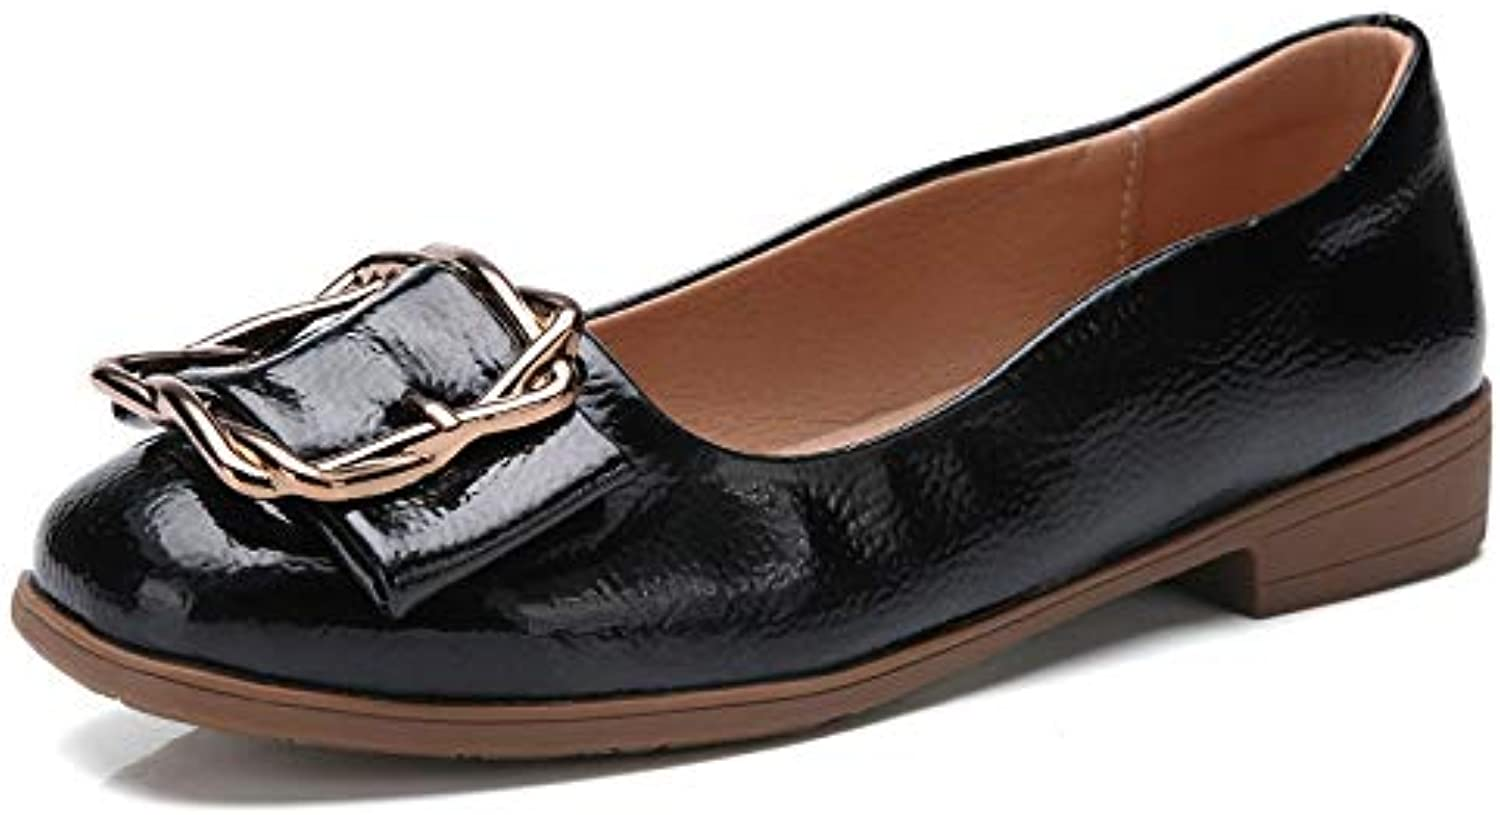 GzPuluz Fashion Sneakers Versatile Comfortable Metal Buckle Shallow Mouth PU Casual shoes for Women